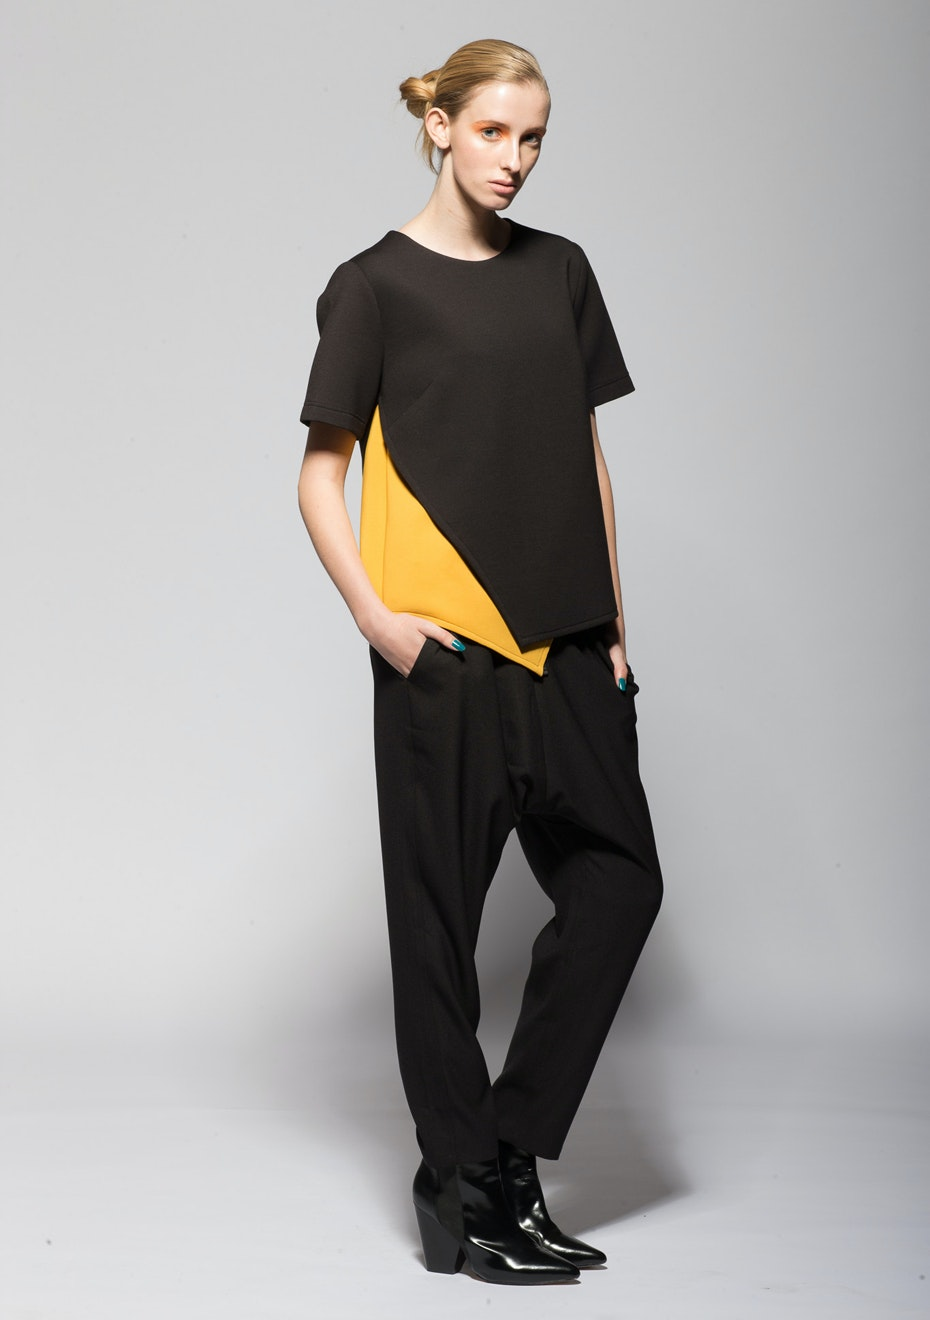 X-Plain - Sunny October Pants - Black